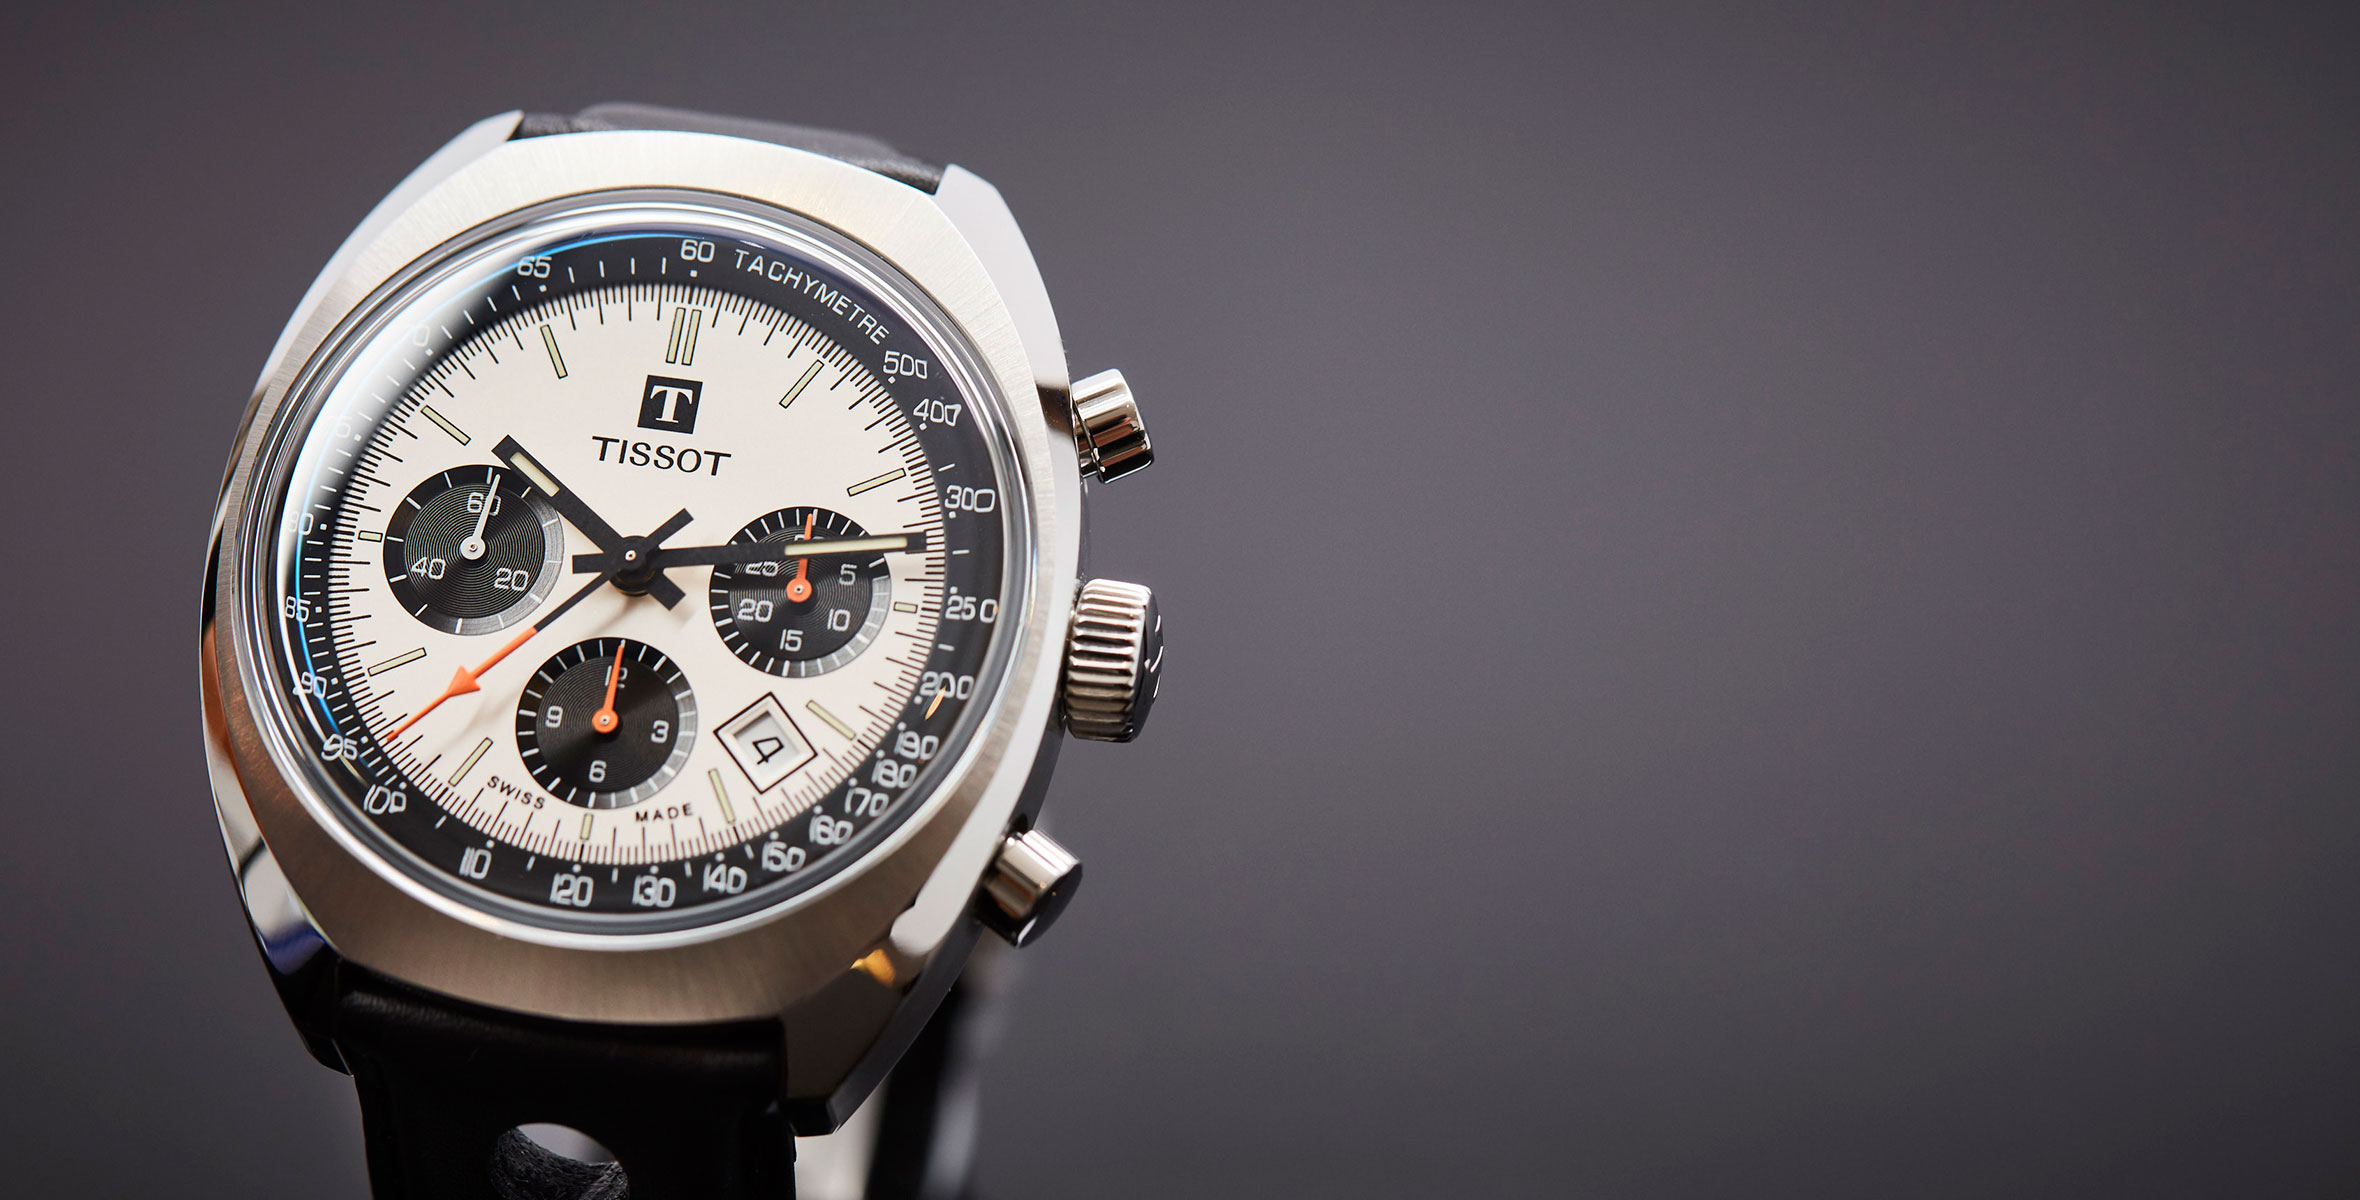 VIDEO: Vintage style done right, the Tissot Heritage 1973 Chronograph